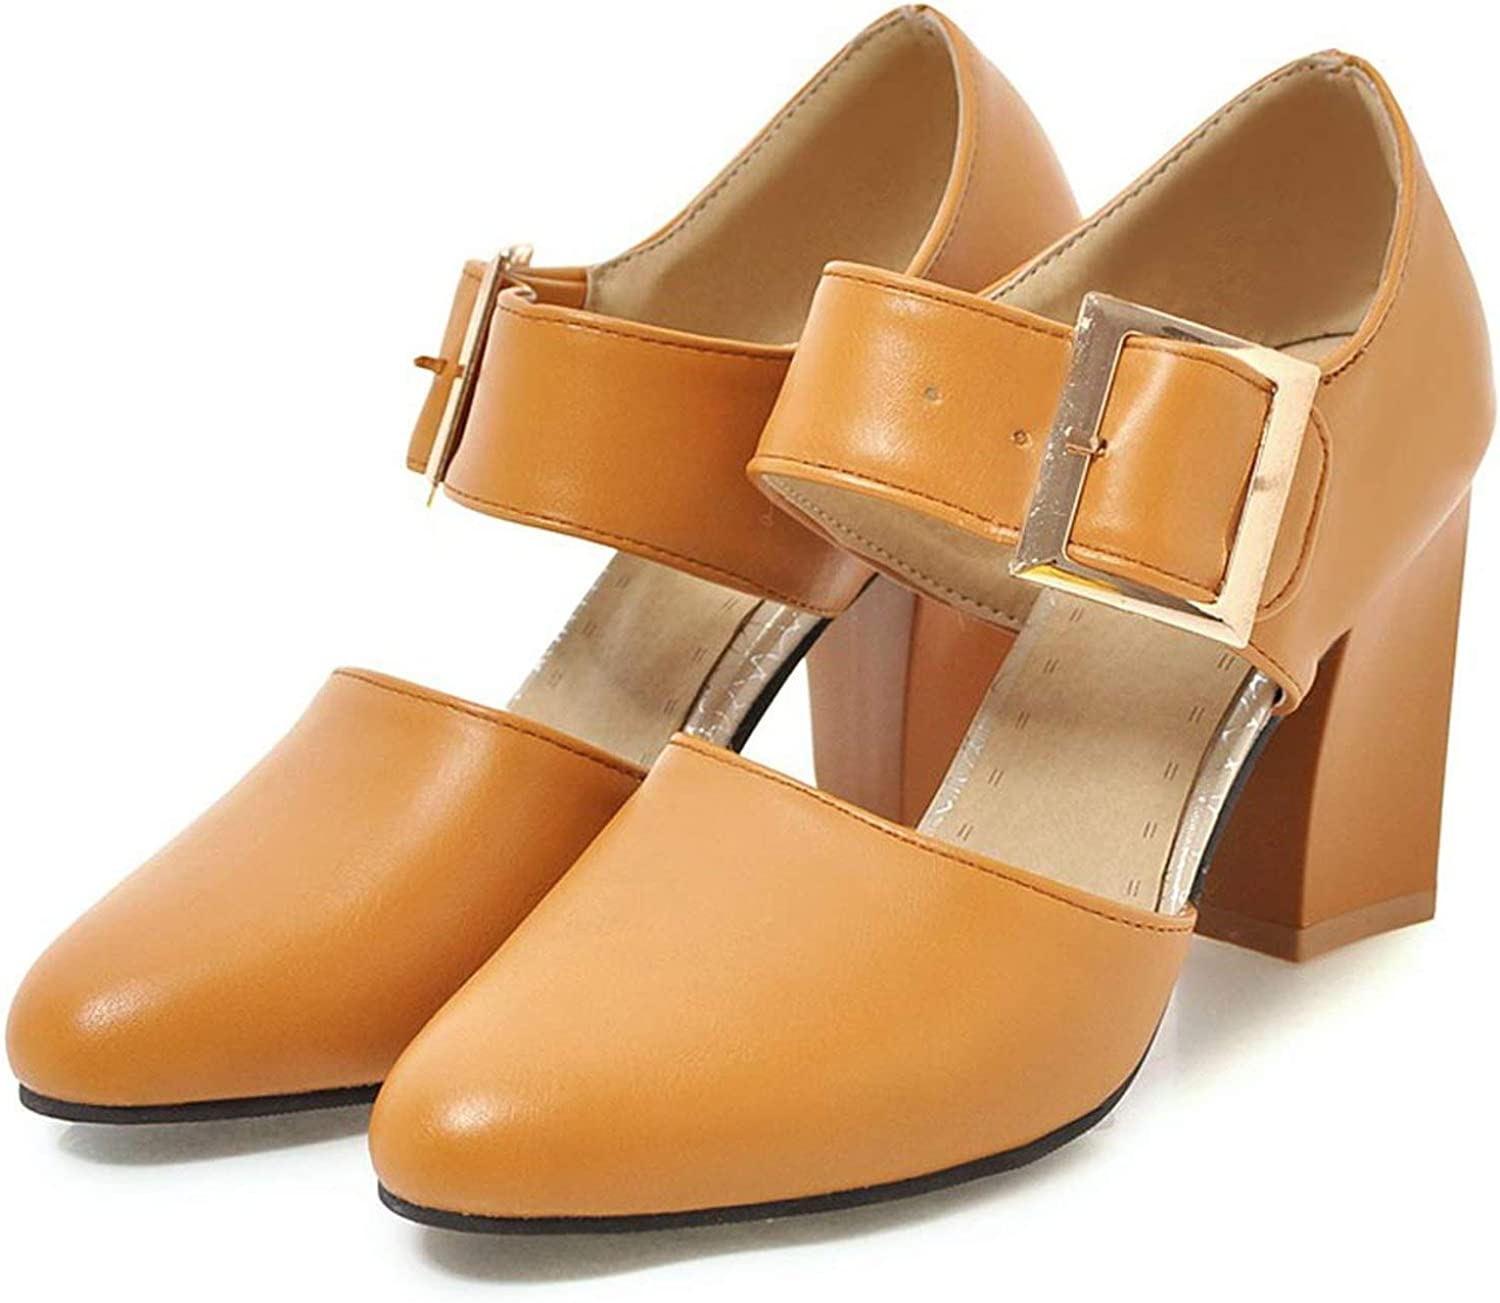 FINDYOU Autumn Pumps High Heel shoes for Women Thick Heel Buckle Office Ladies shoes Round Toe Shallow shoes